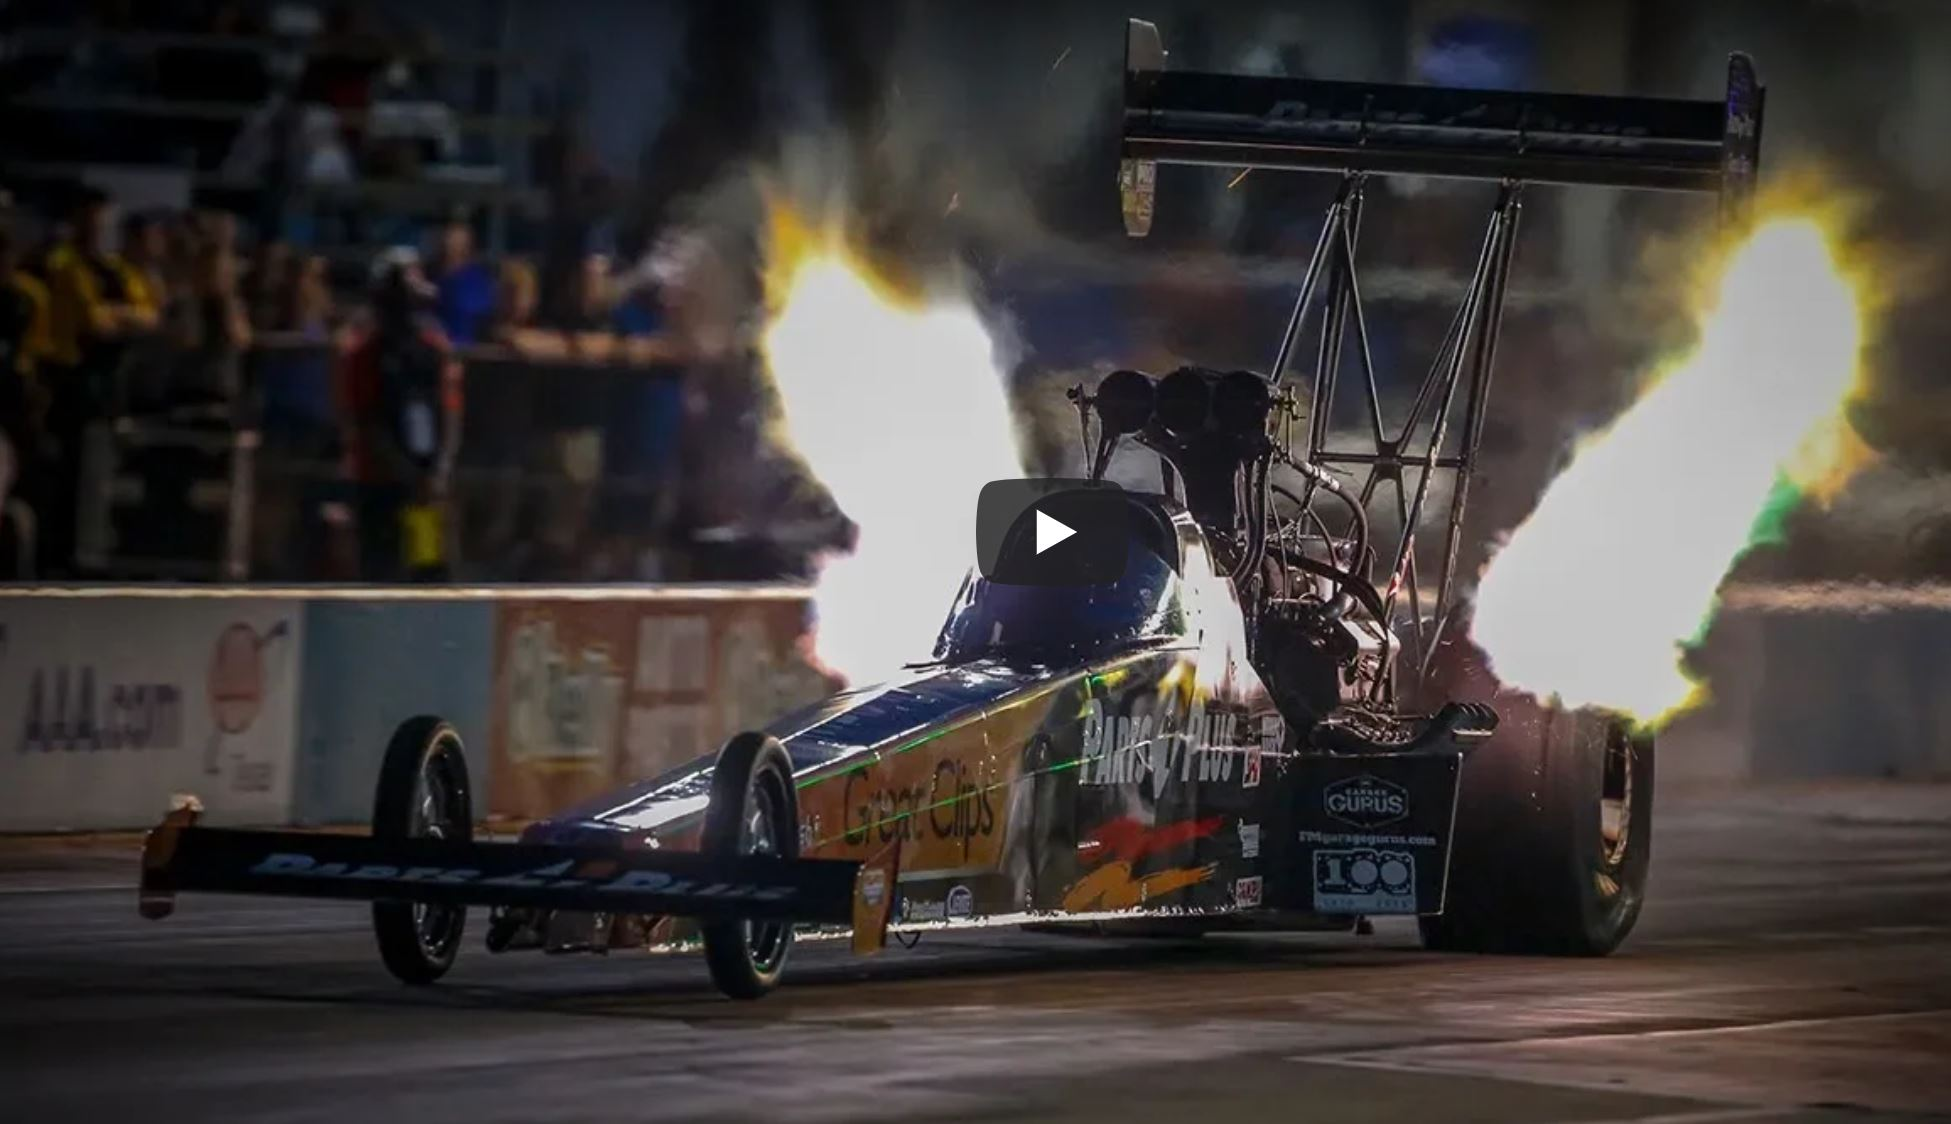 Video: NHRA AAA Texas Fall Nationals Pro Category Number One Qualifiers